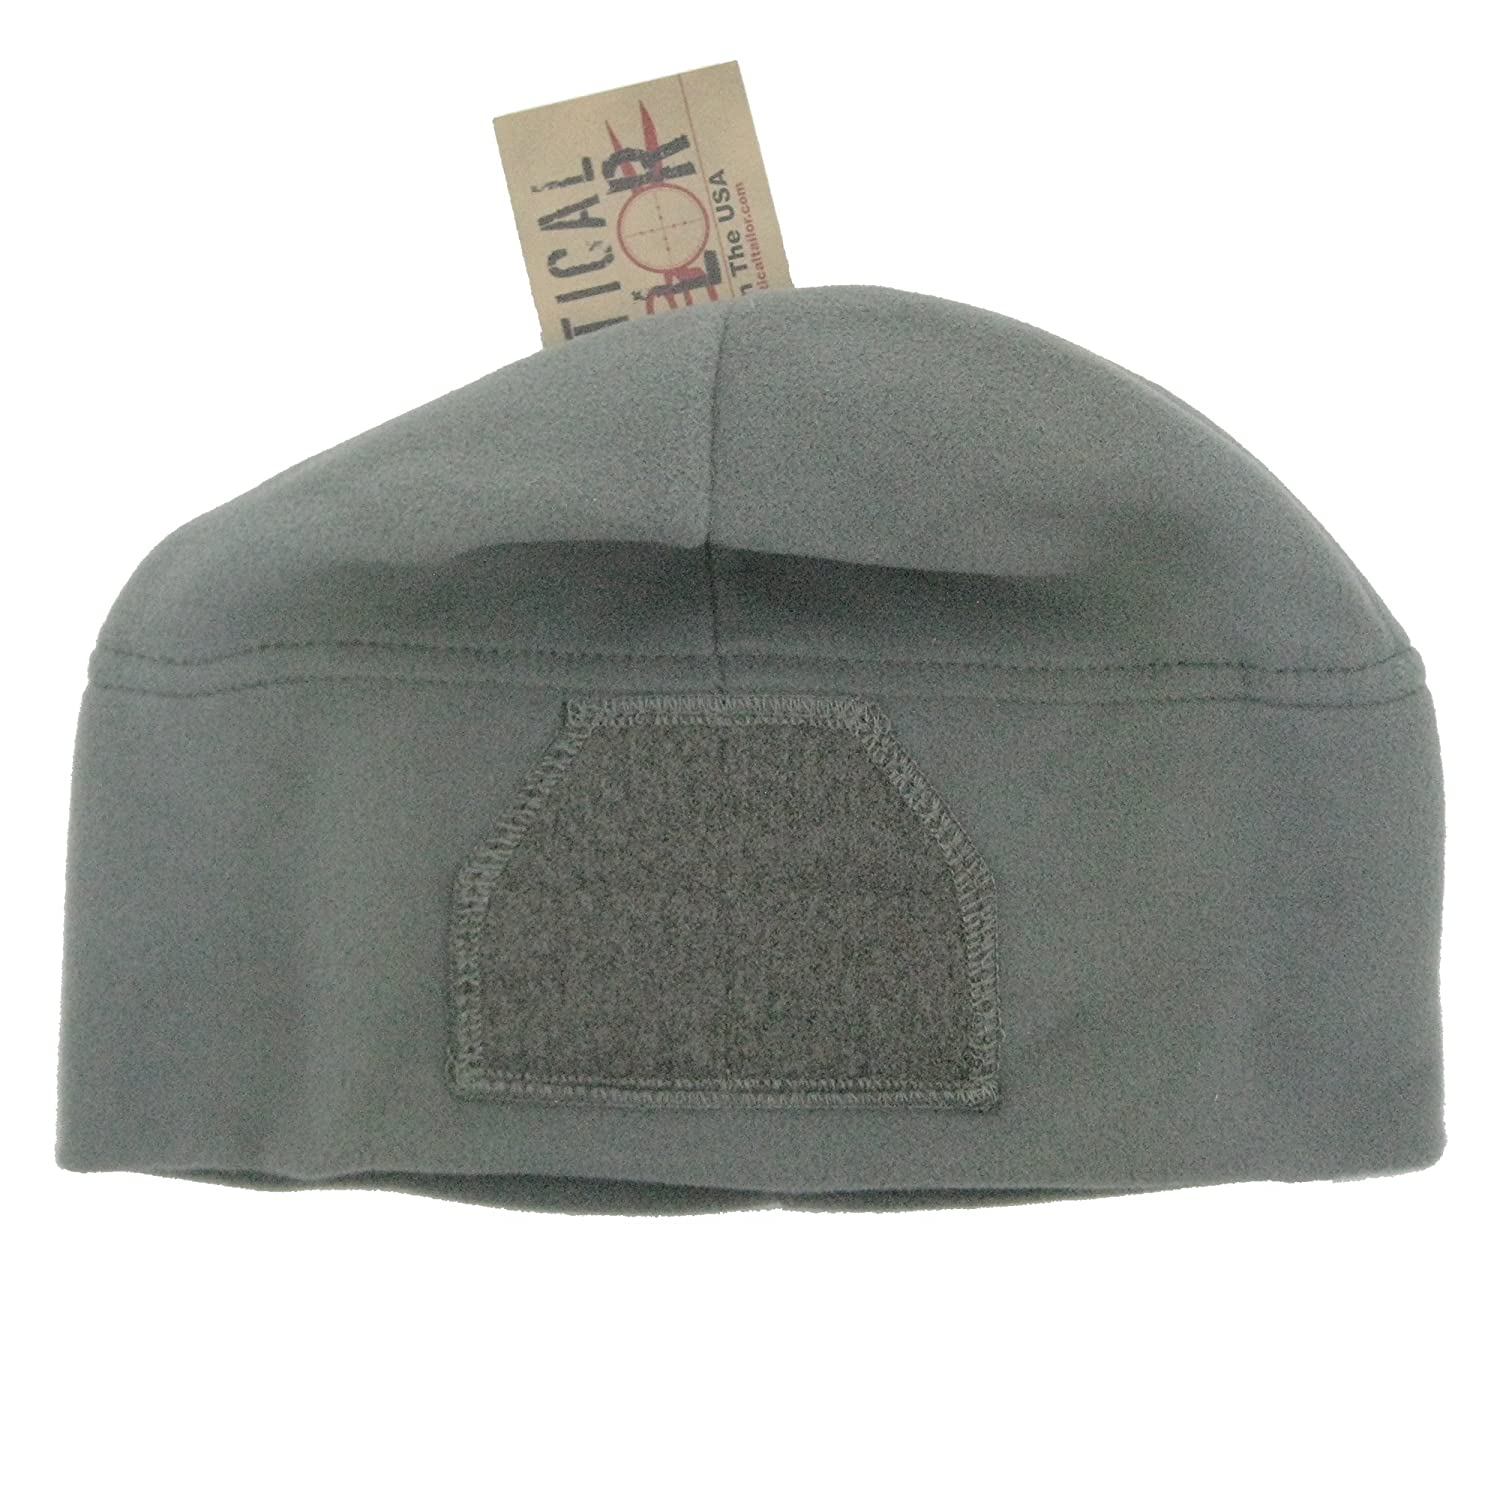 3f66ae622e4 Mil-Spec Monkey Fleece Watch Cap (Coyote Brown) at Amazon Men s Clothing  store